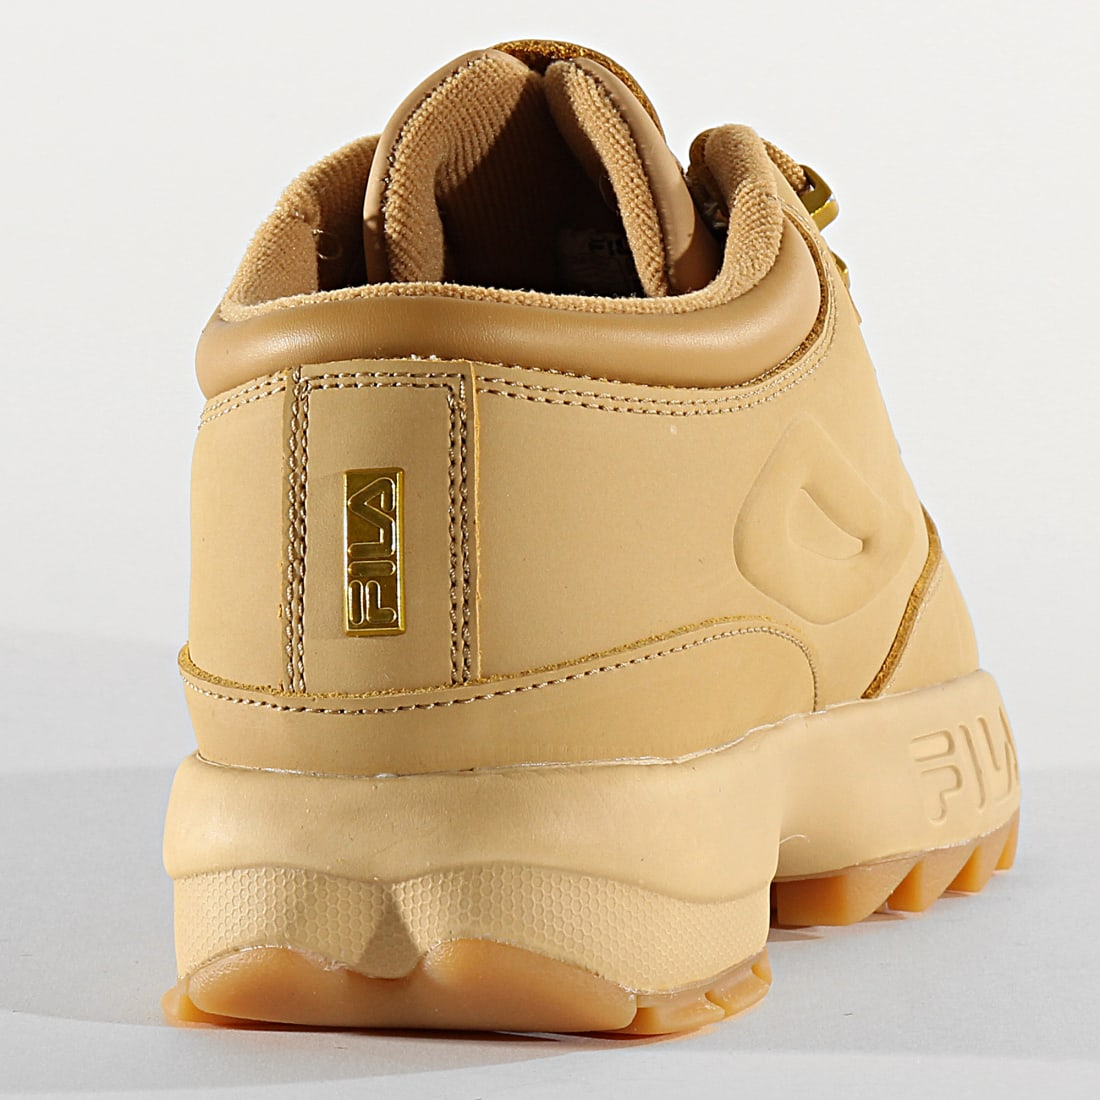 Fila Baskets Disruptor Hiker Low 1010708 Chipmunk